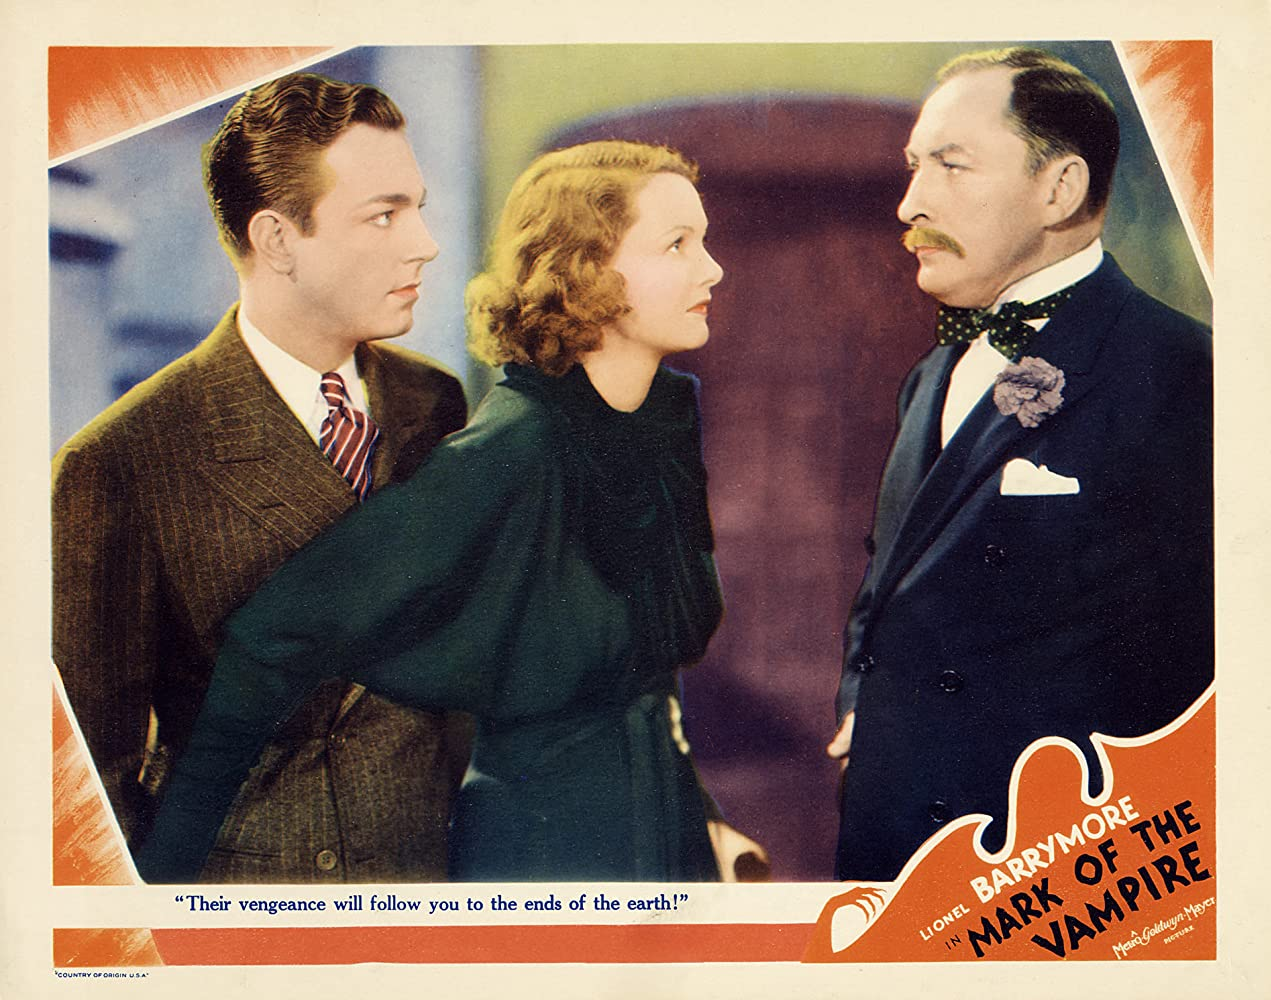 Elizabeth Allan, Lionel Atwill, and Henry Wadsworth in Mark of the Vampire (1935)